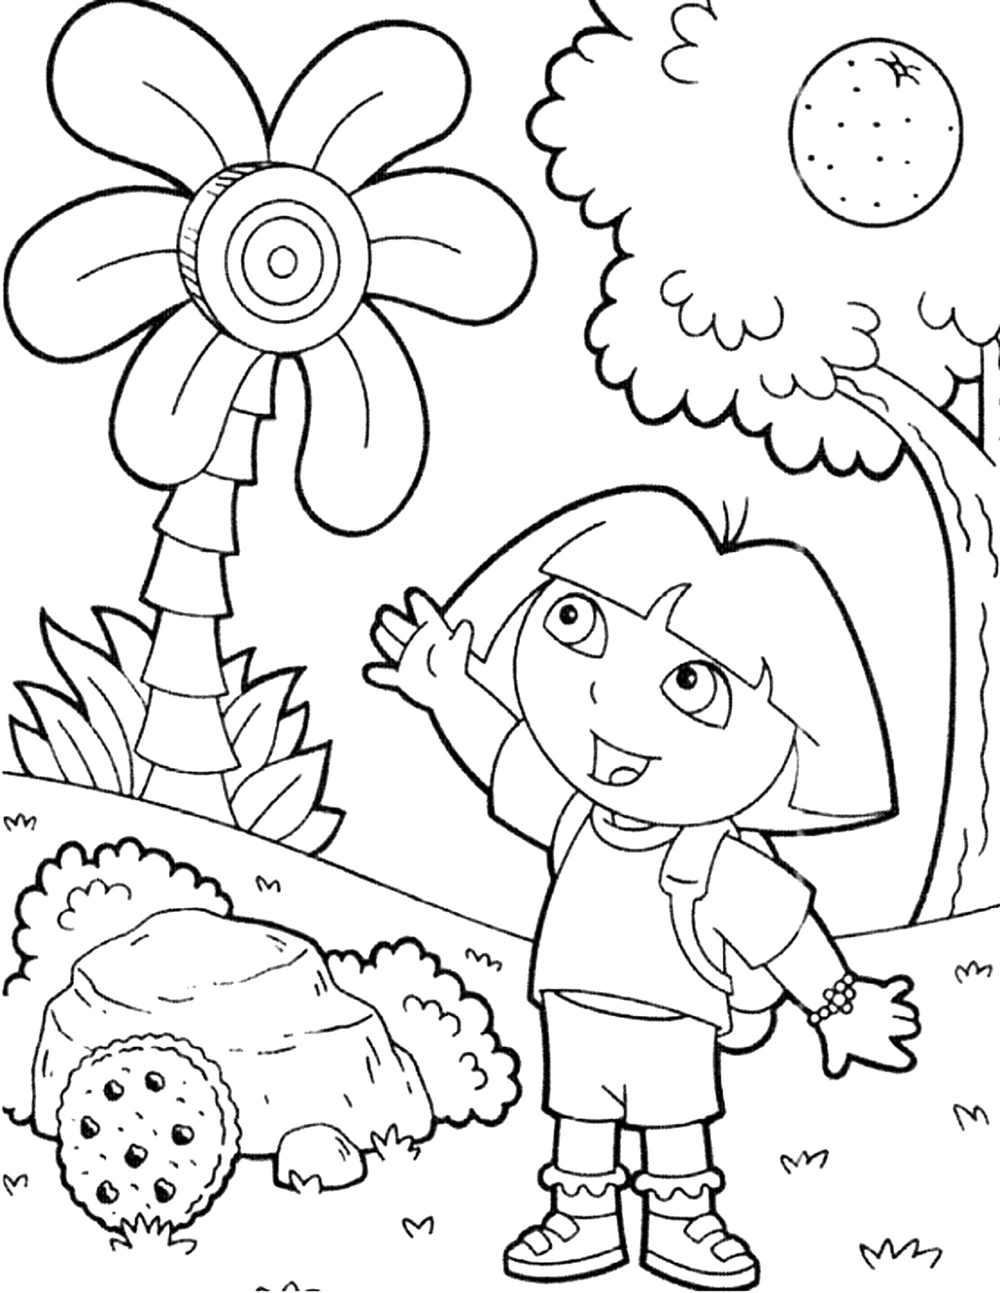 free printable dora coloring pages print download dora coloring pages to learn new things coloring pages dora free printable